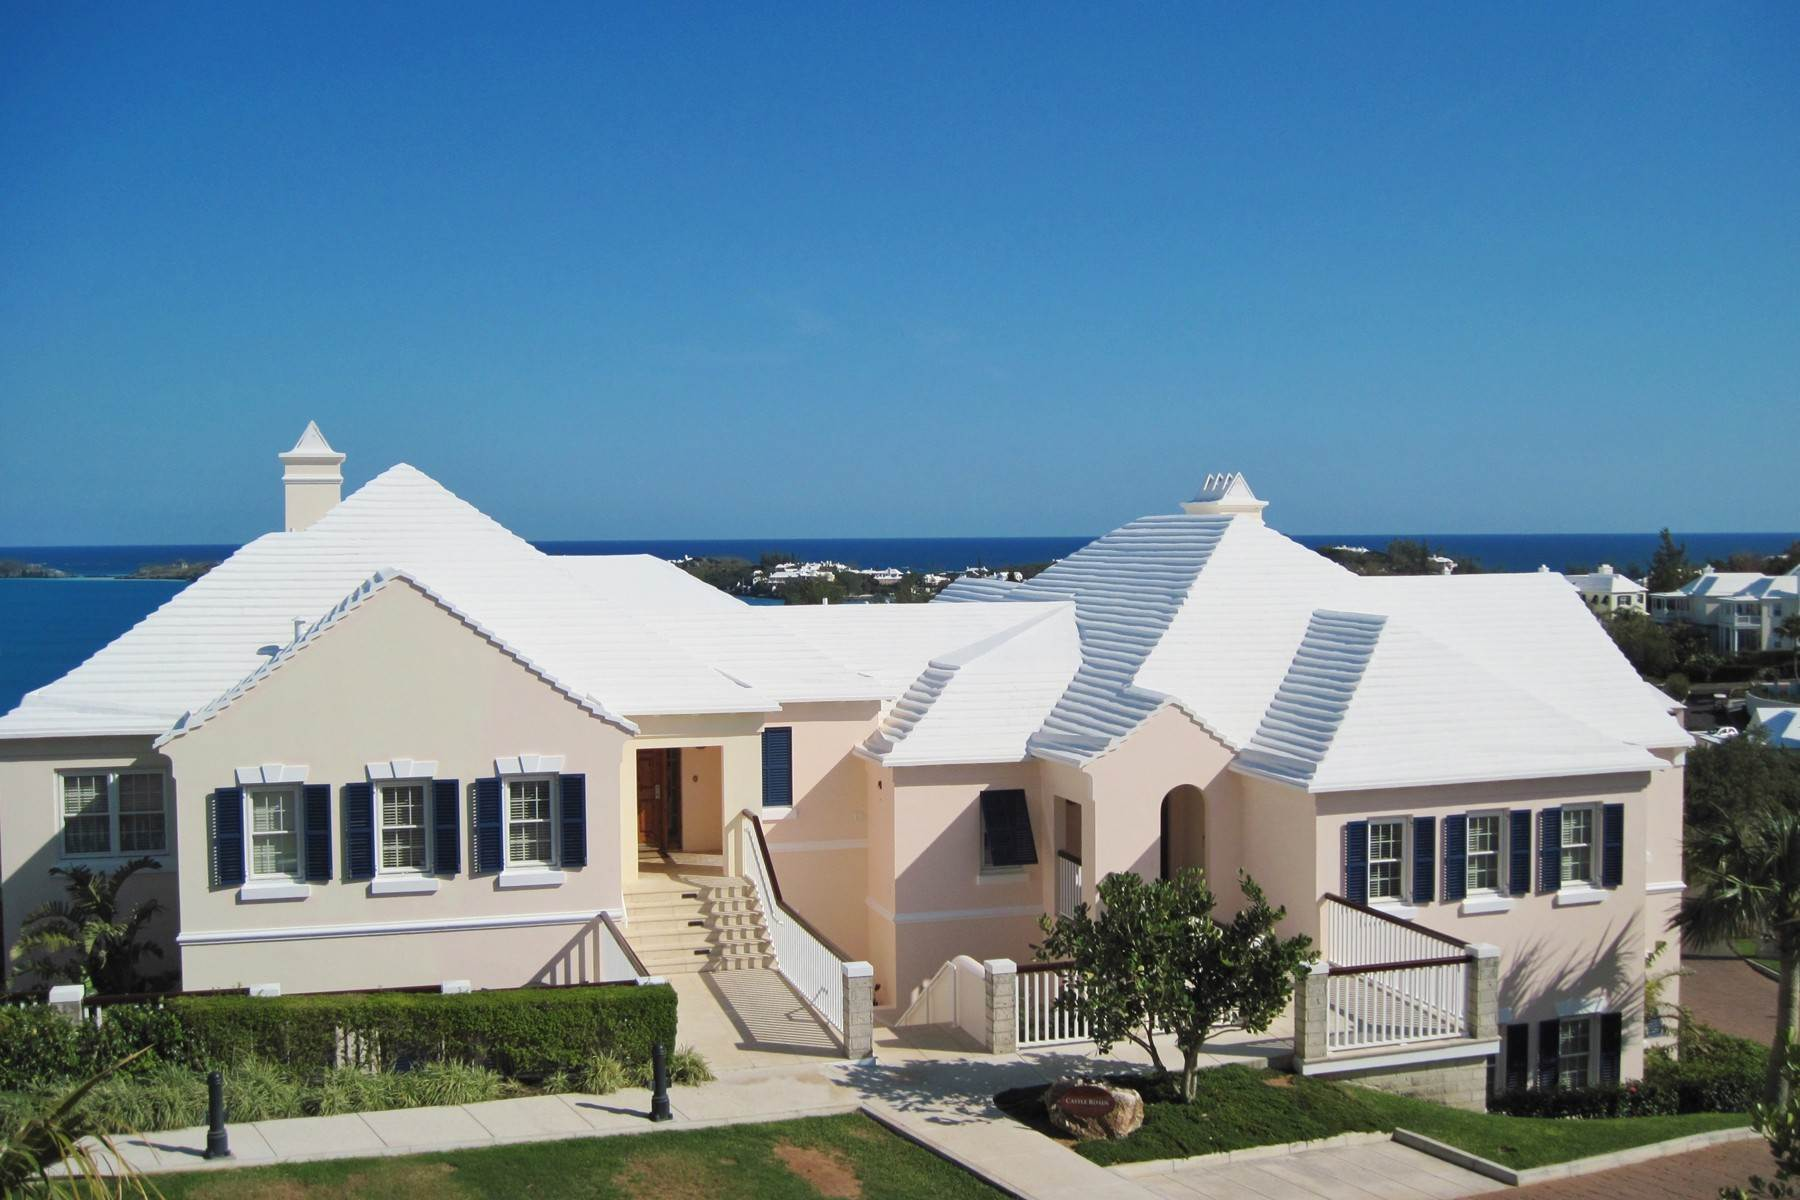 2. Short Term / Vacation Rentals at Tucker's Point Residents Club St Georges Parish, Bermuda